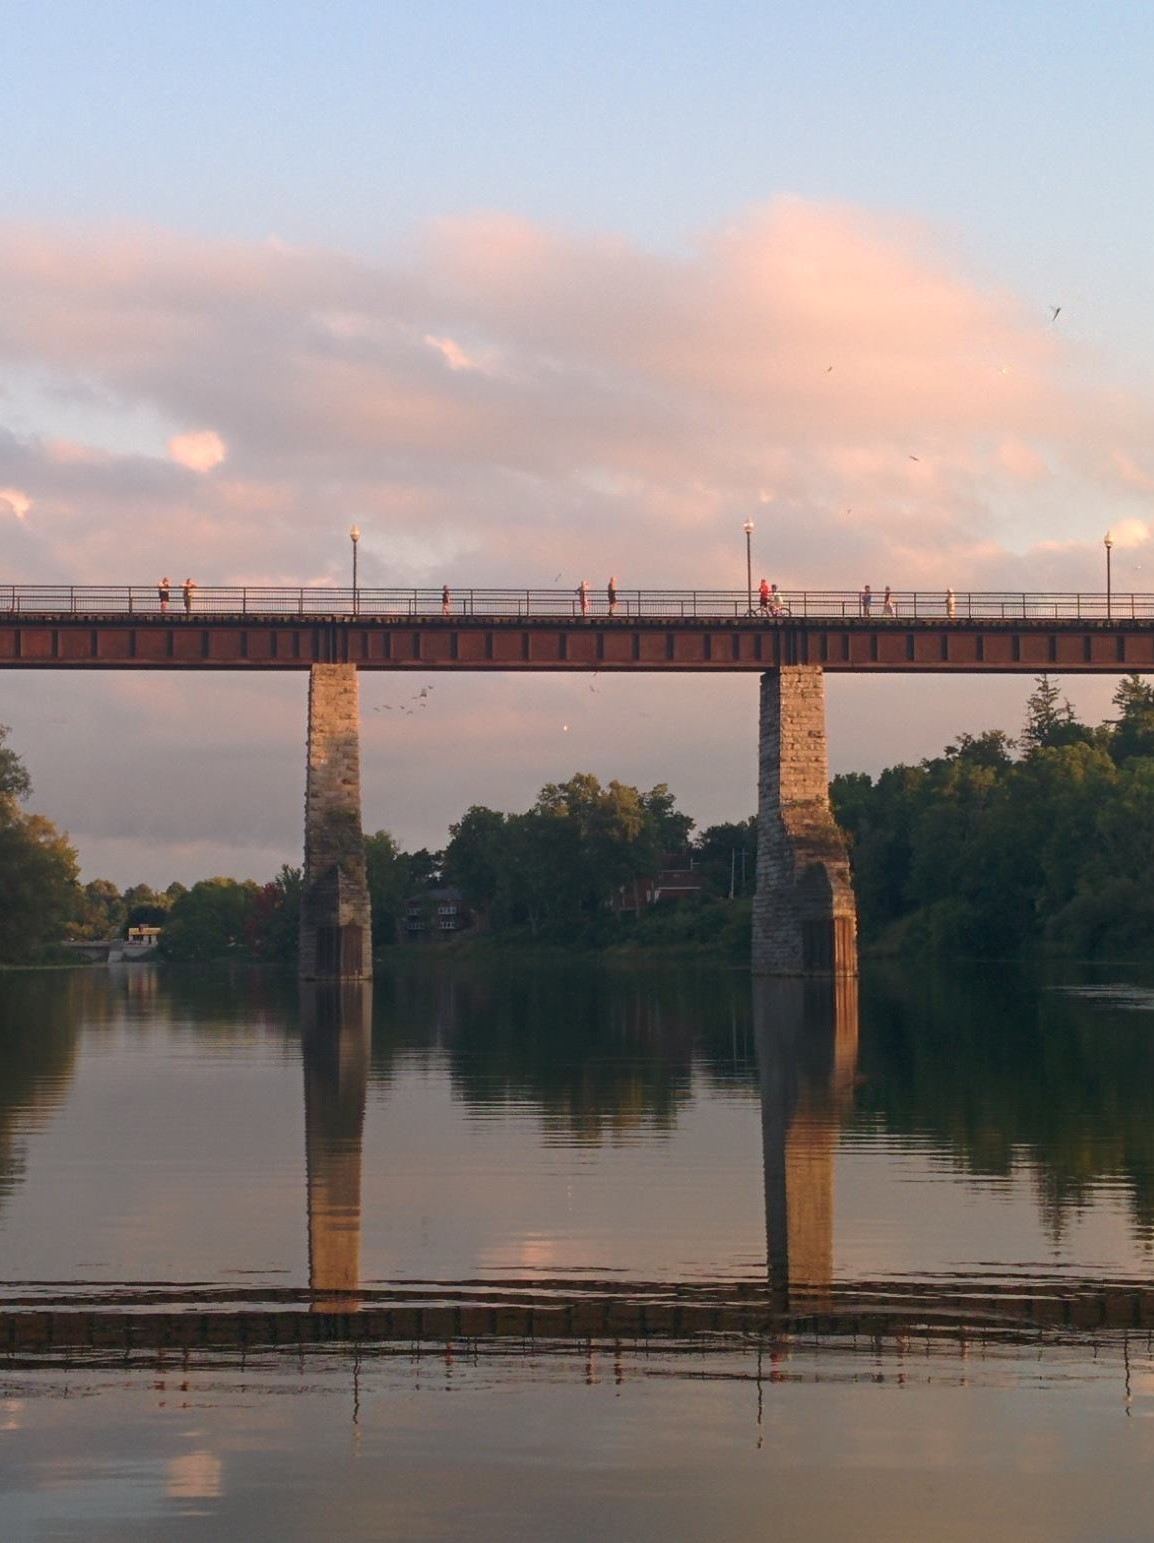 Trestle summer sunset